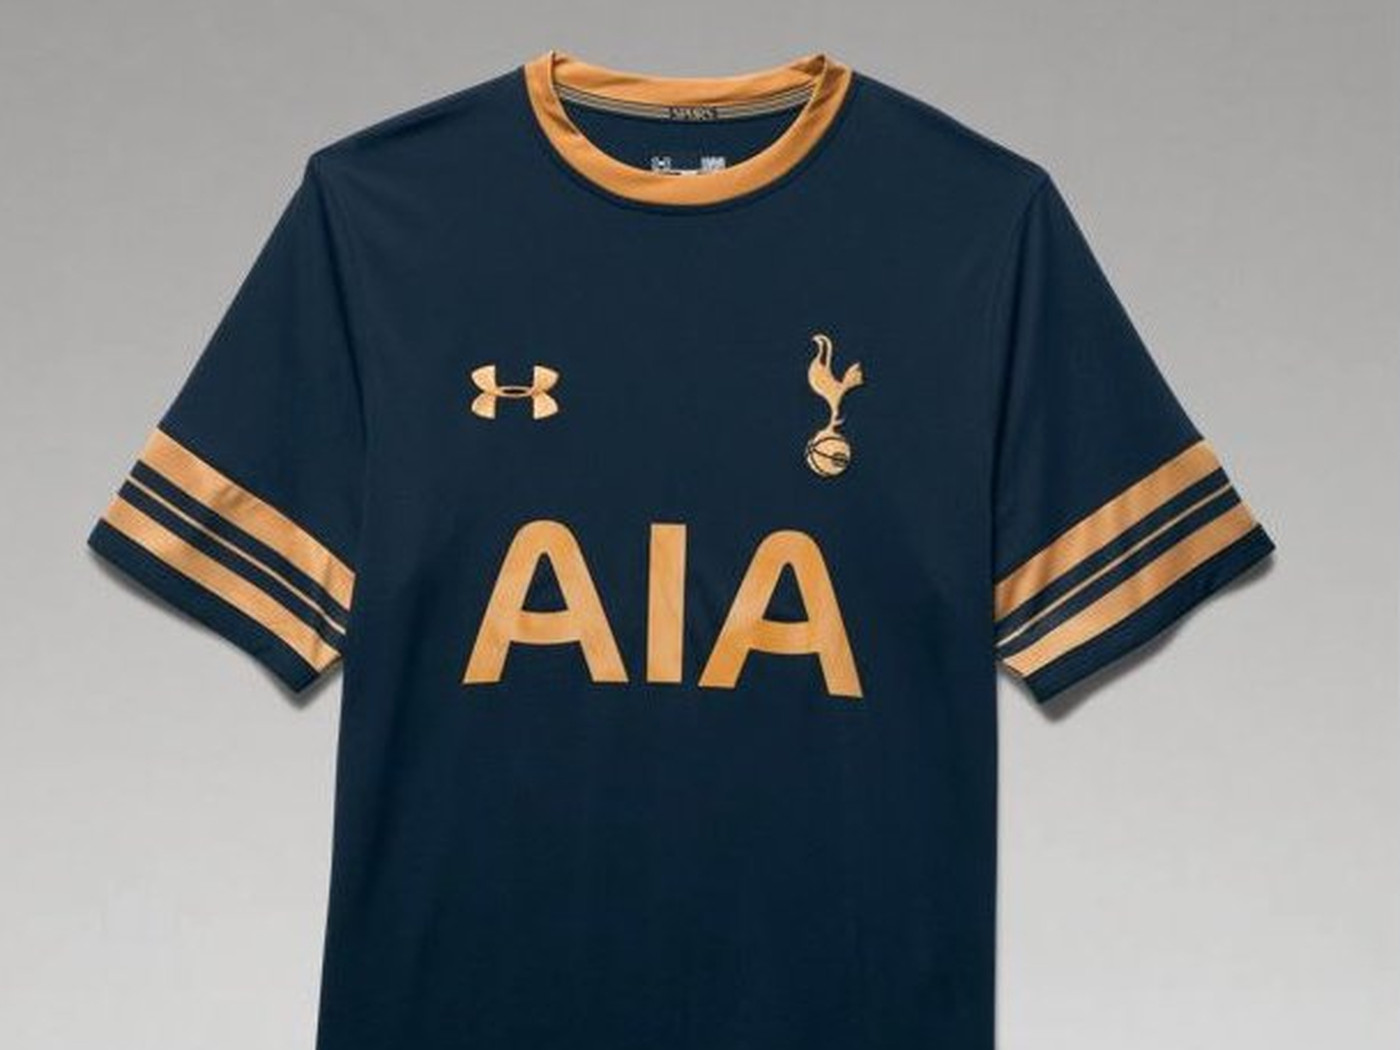 reputable site 7add9 dcd32 Are these Tottenham Hotspur's away kits for 2016-17 ...